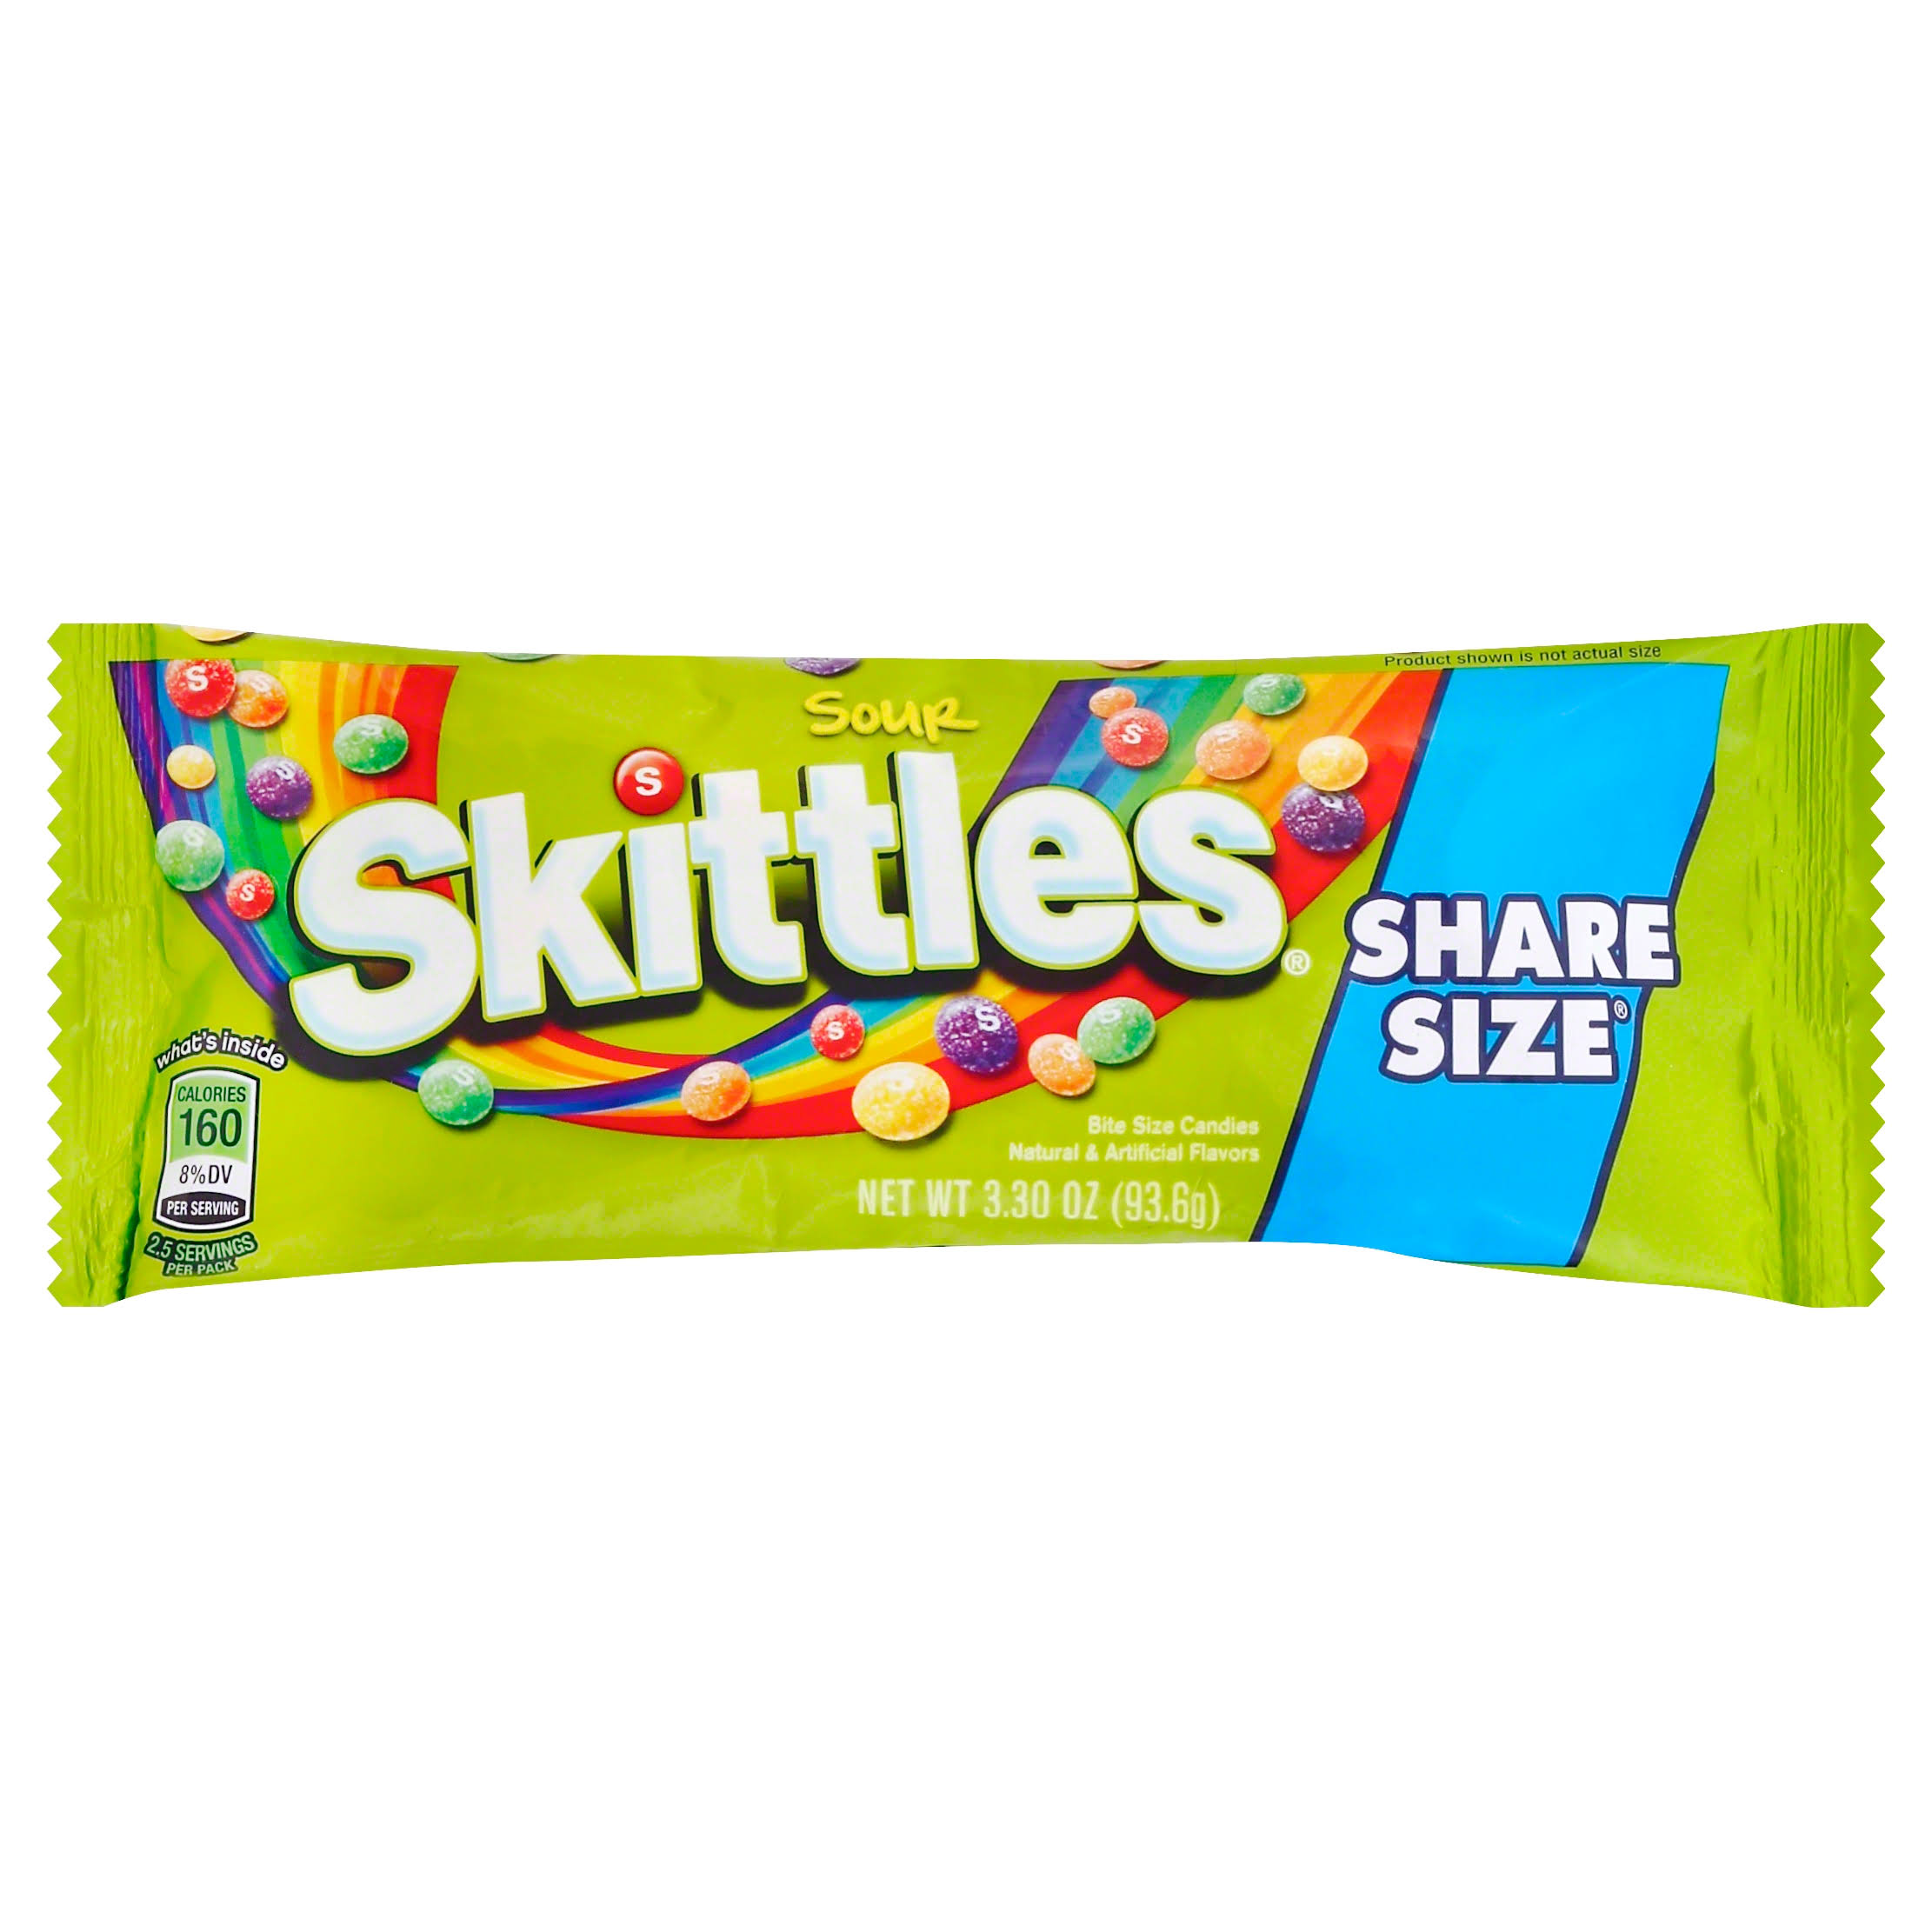 Skittles Sour Candles